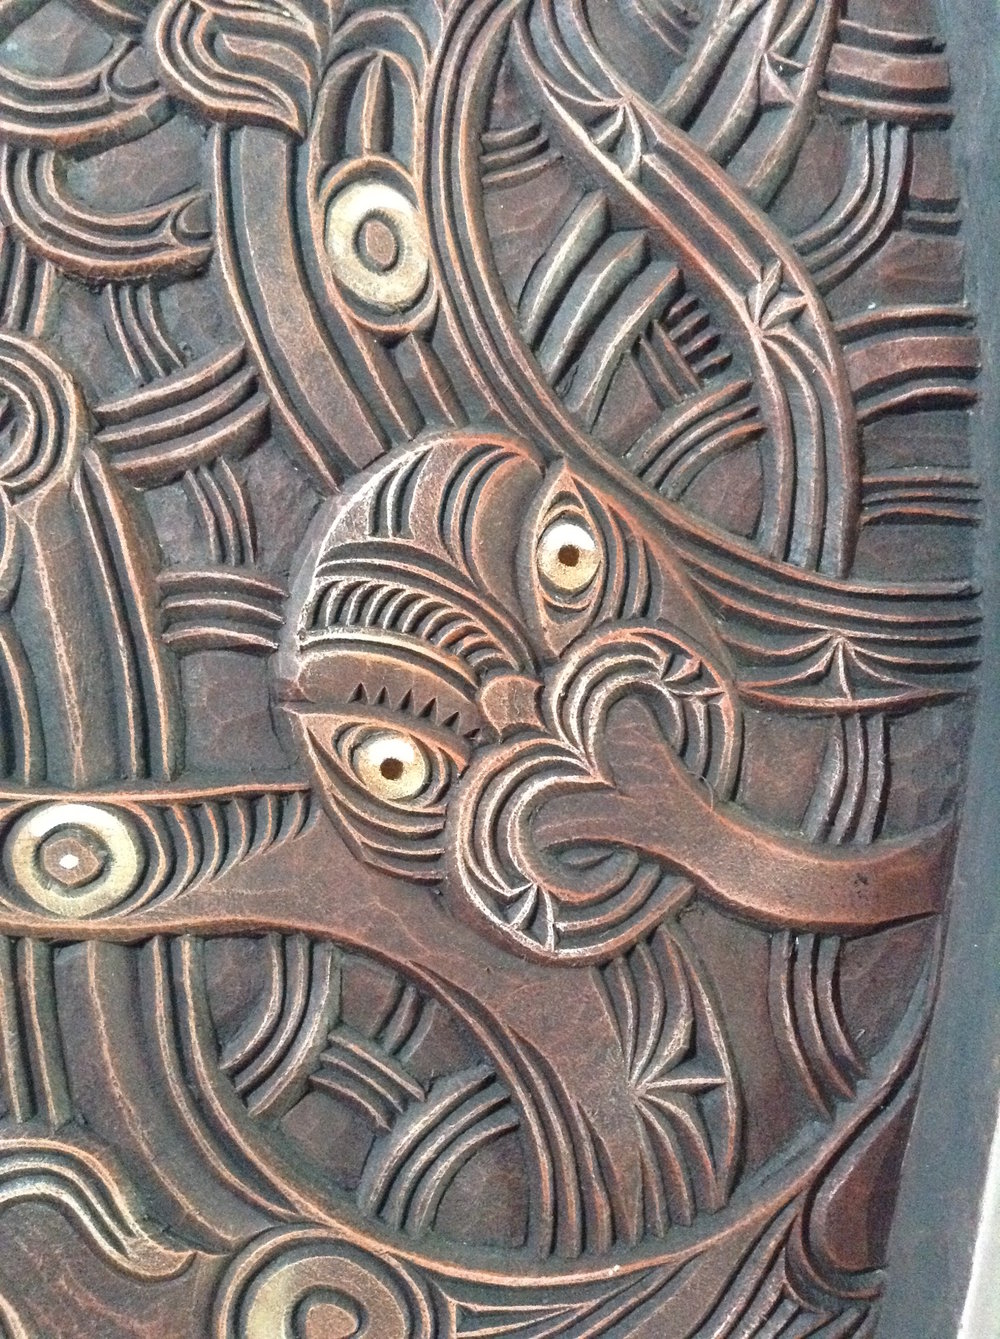 Detail of the work.